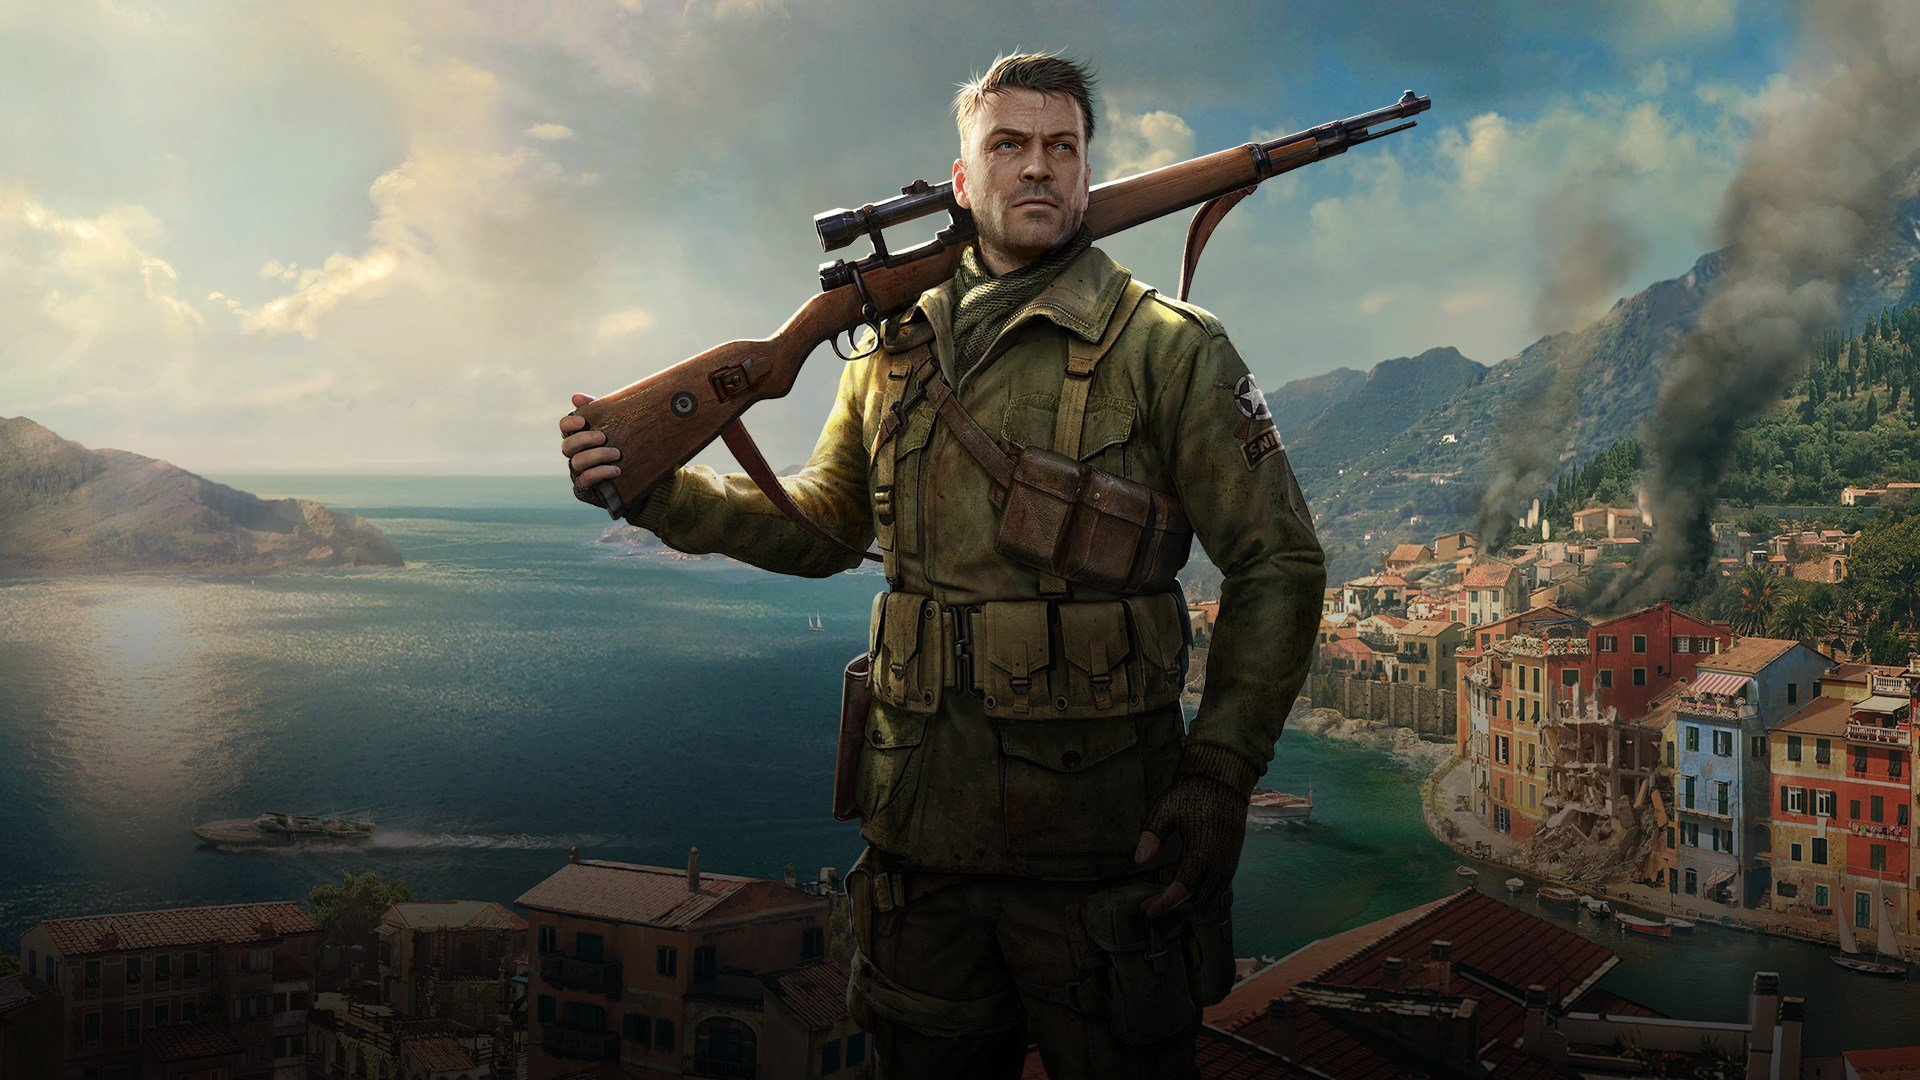 Google Stadia Pro : Sniper Elite 4, Republique, Risk of Rain 2 offerts en novembre 2020